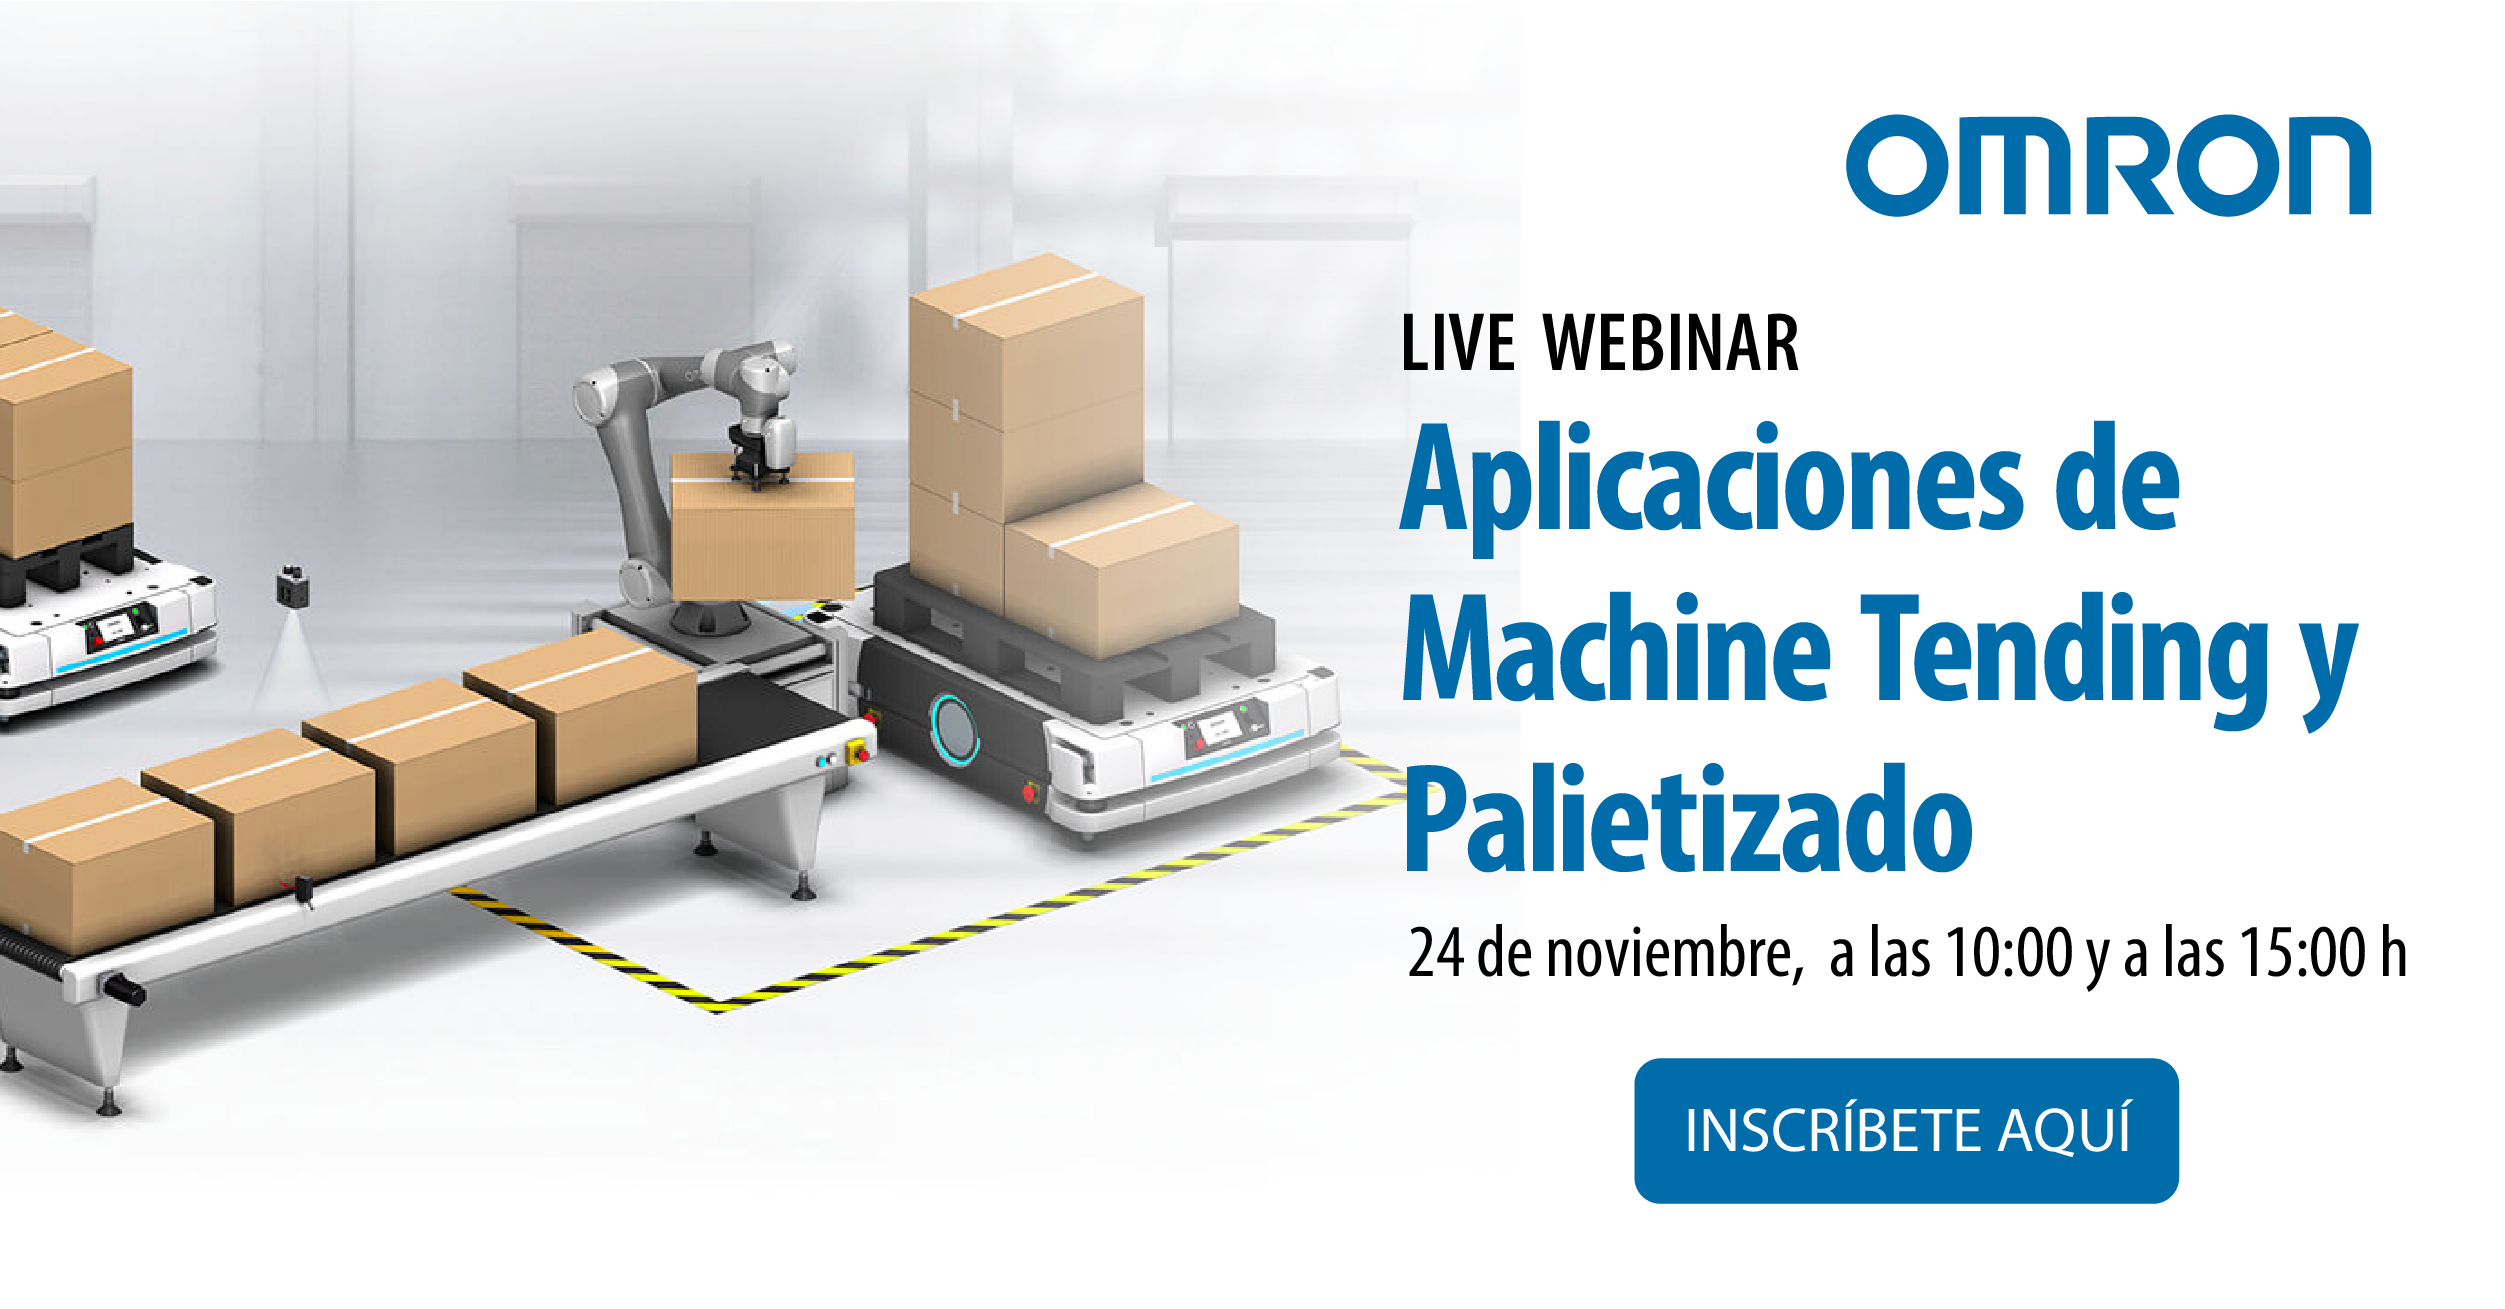 Post Linkedin Webinar Aplicaciones De Machine Tending Y Paletizado